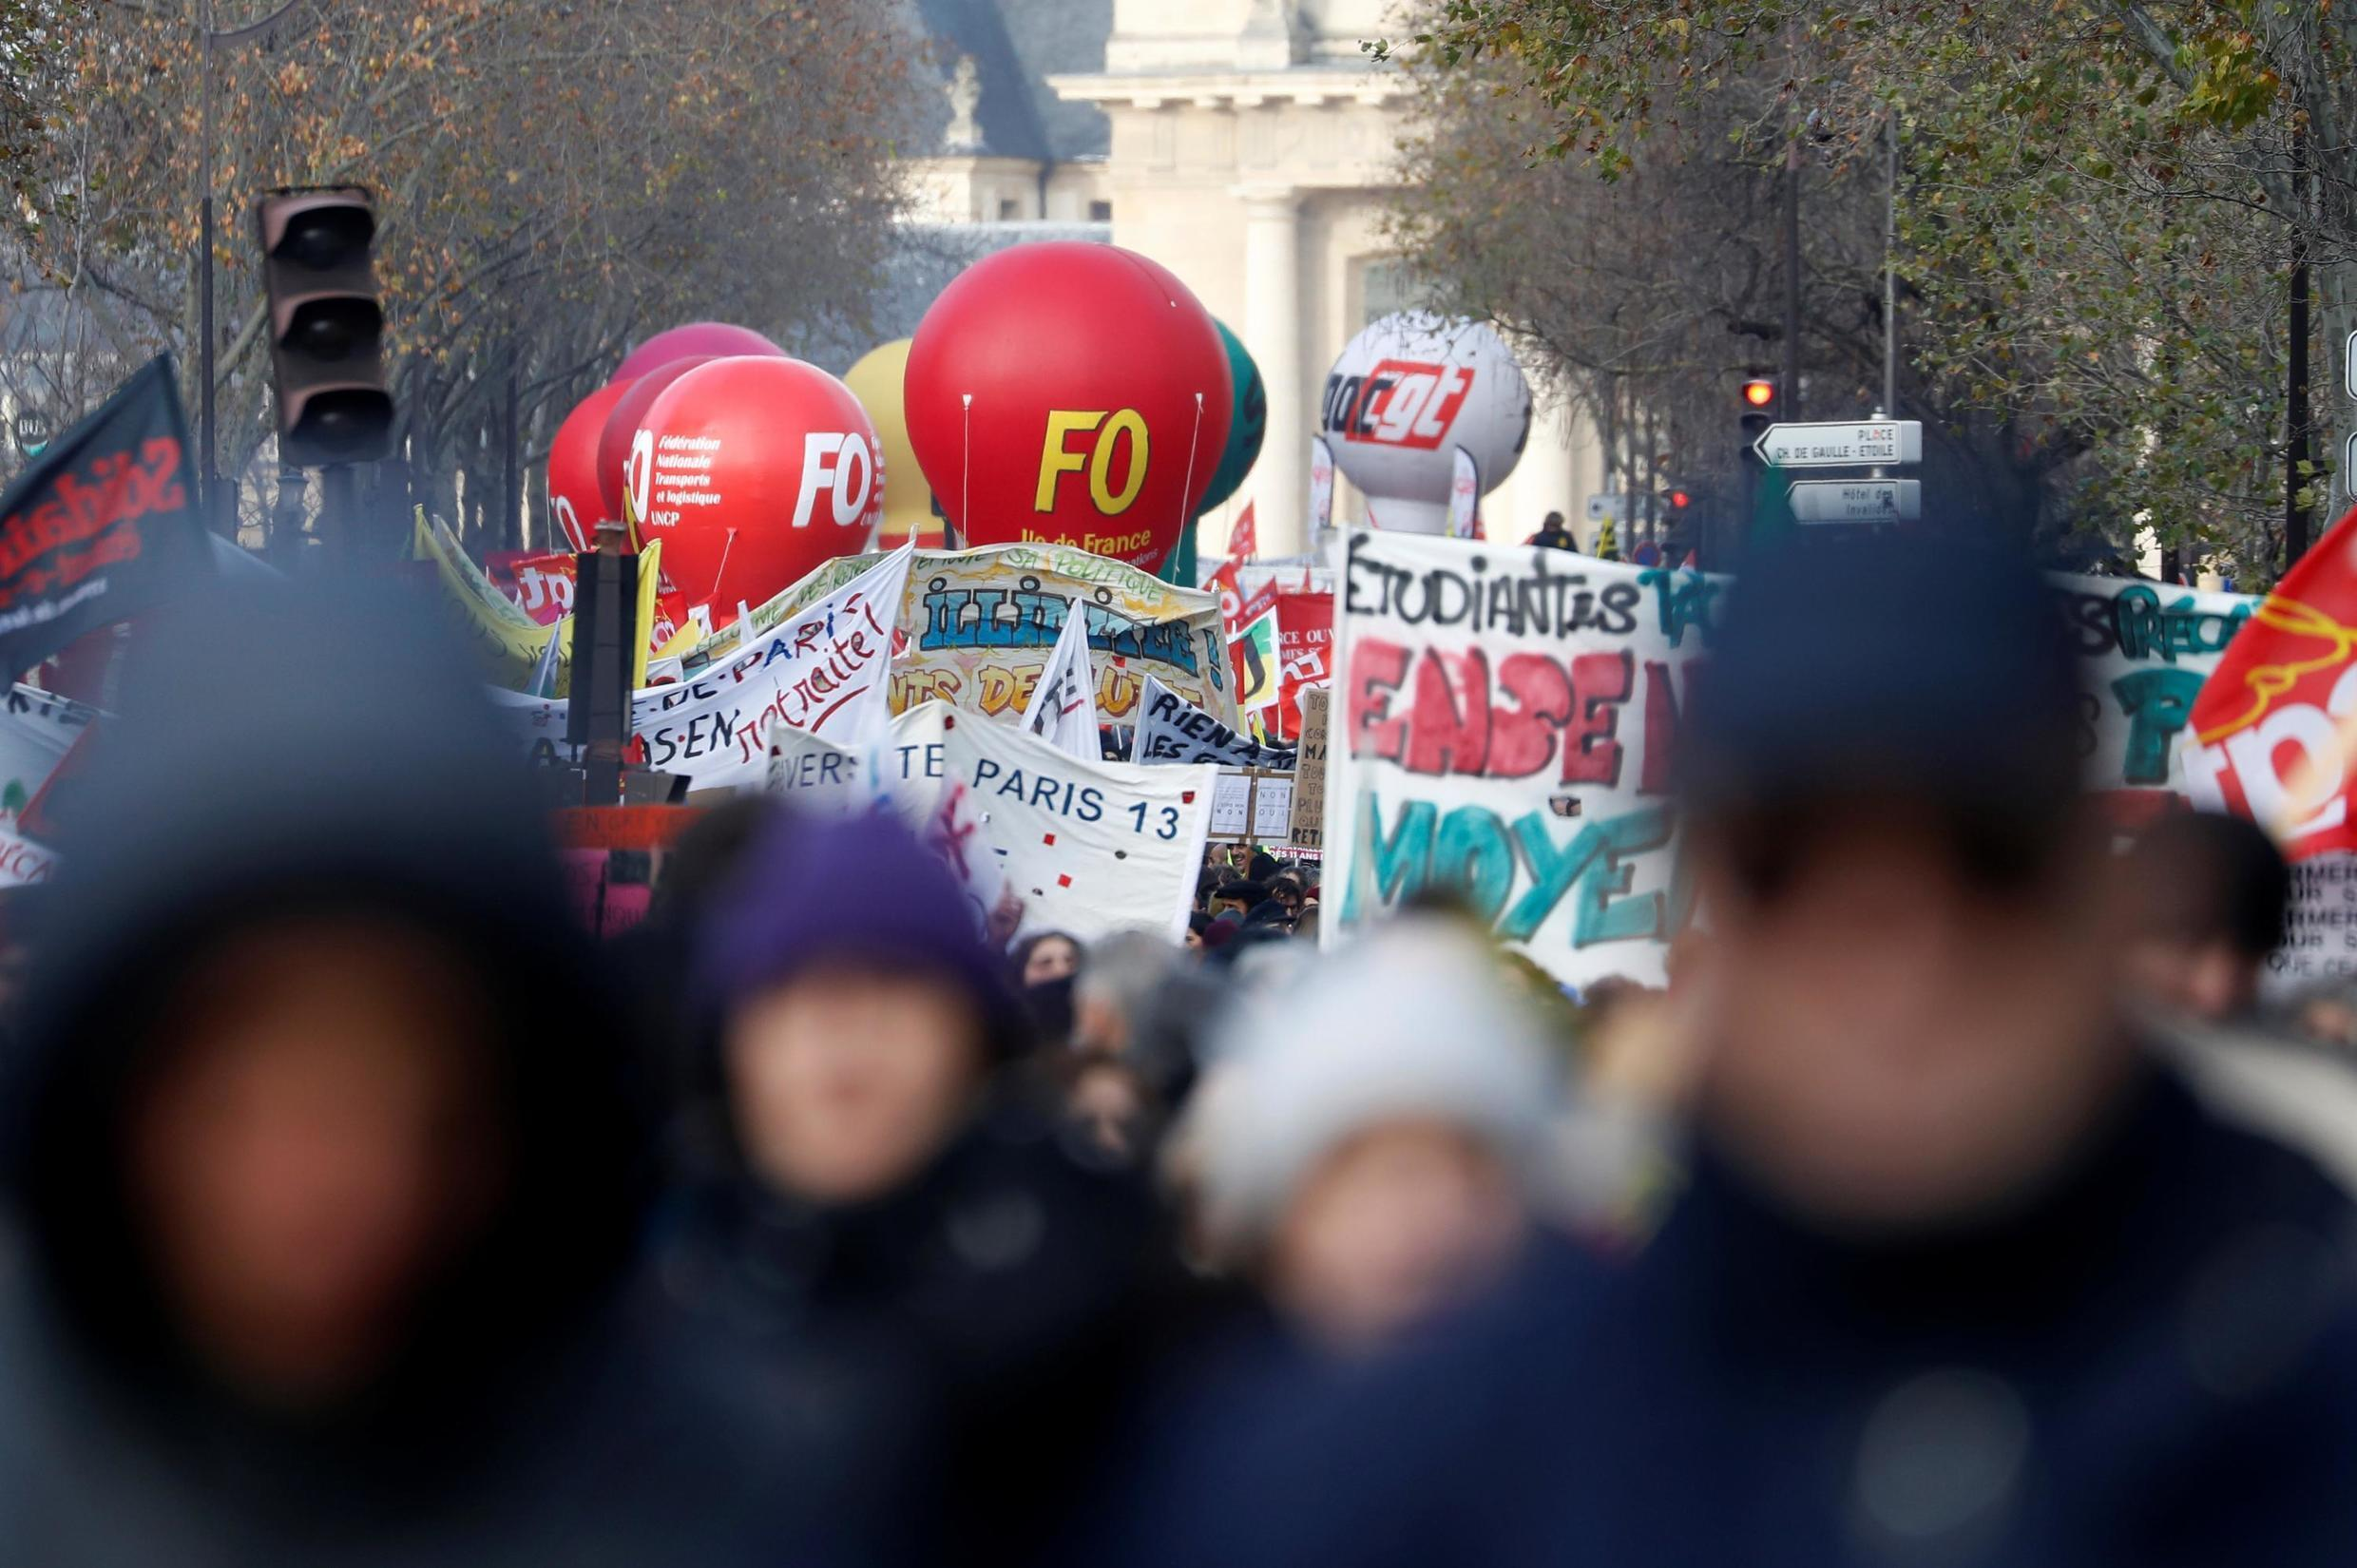 French labour union members attend a demonstration against French government's pensions reform plans in Paris as part of a second day of national strike and protests in France, December 10, 2019.